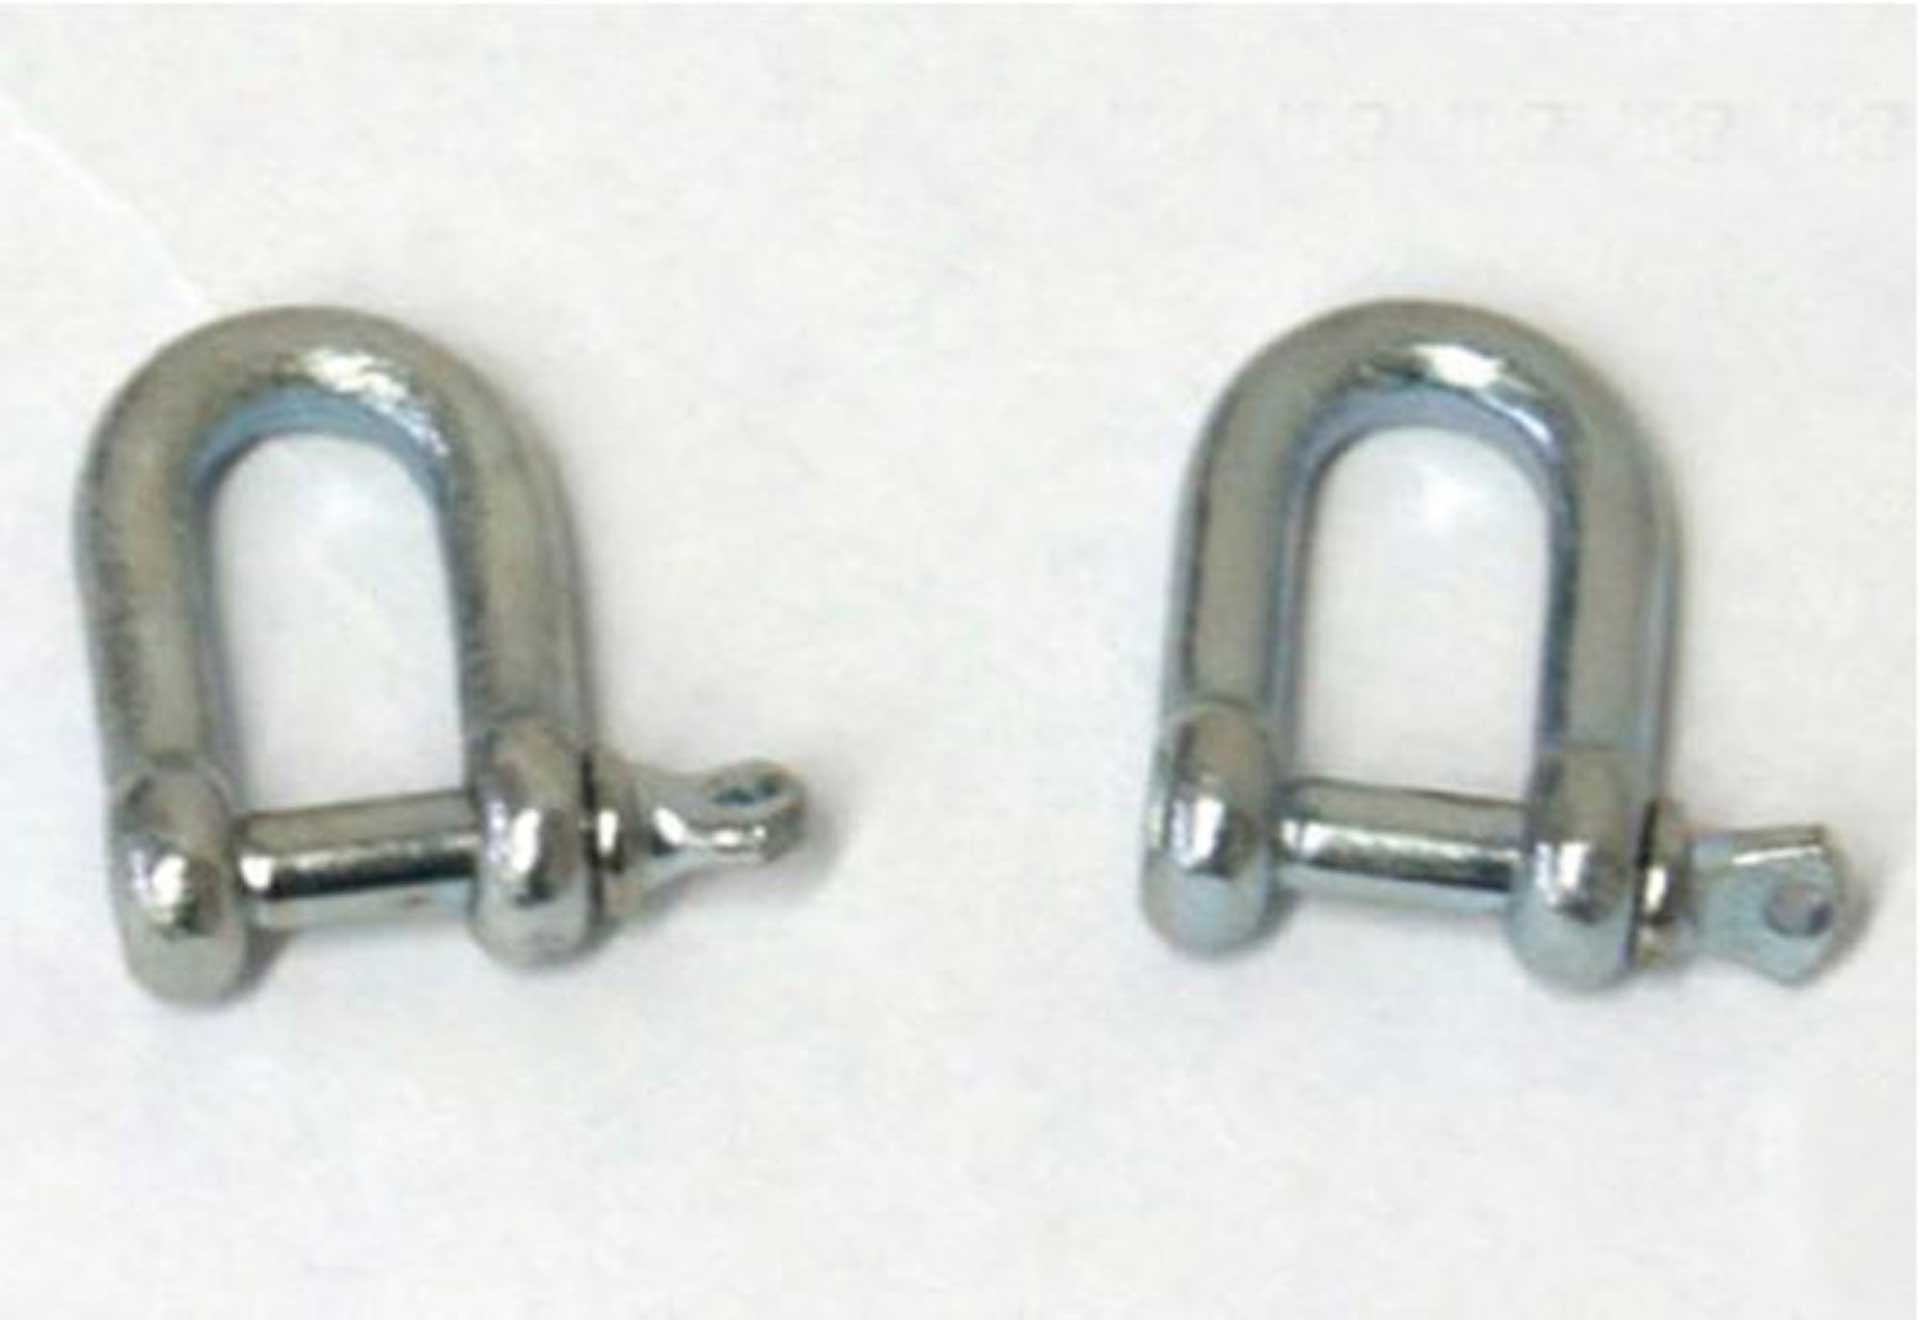 PARA-RC SHACKLE 2PAIR (2PIEC.) 5MM  FOR ATTACHMENT OF HARNESSES/NACELLA TO SHOULDER STRAP OF THE UMBRELLA